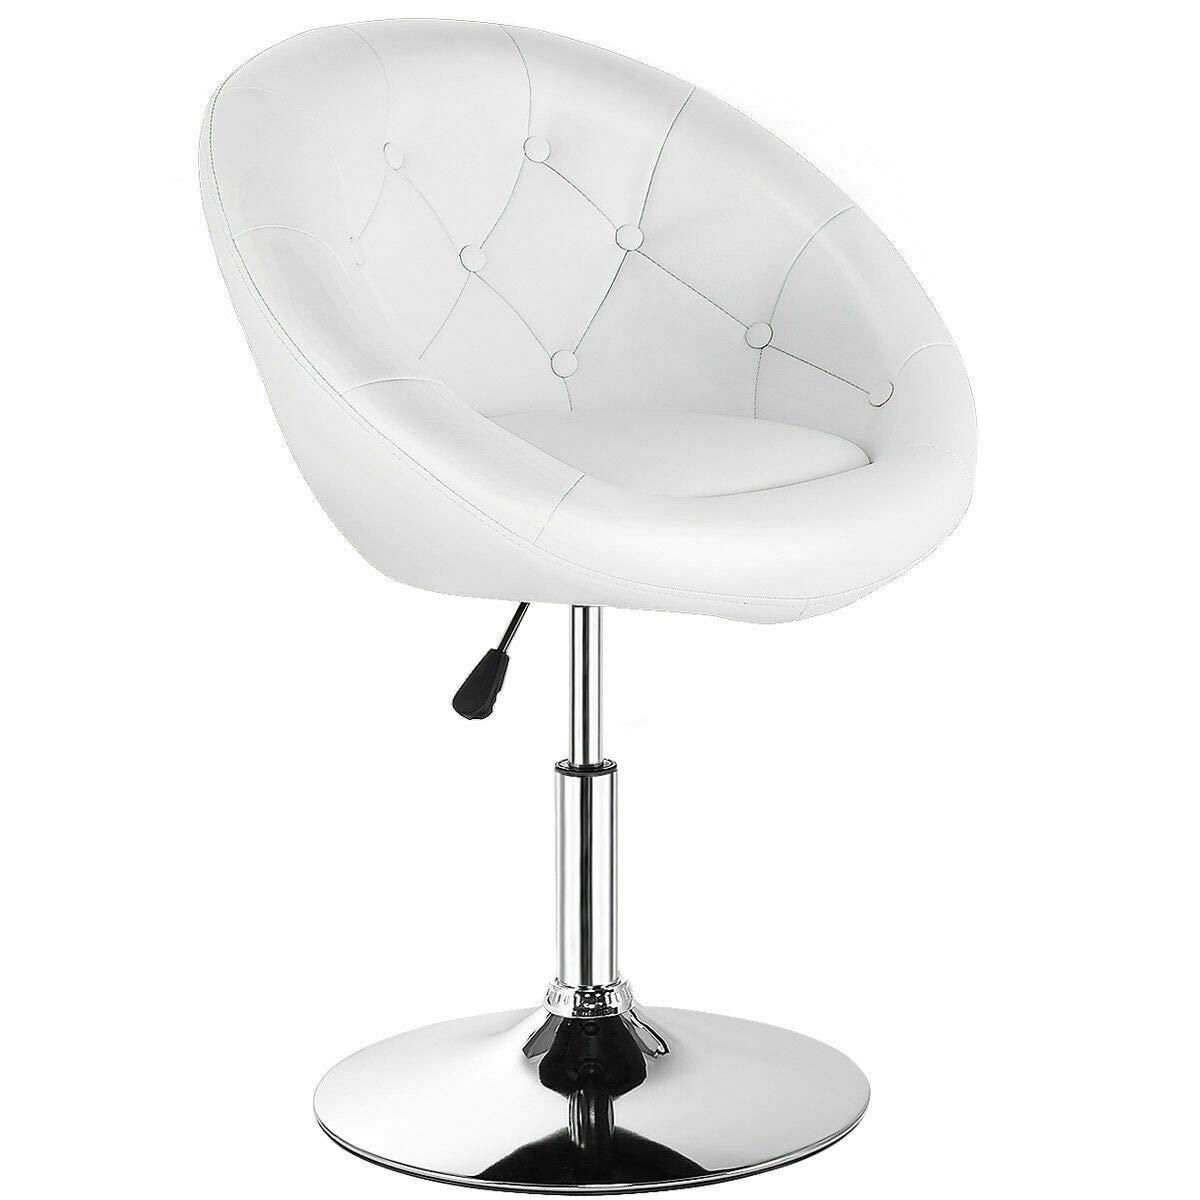 Costway Swivel Accent Chair, Contemporary Tufted Round-Back Tilt Chair with Chrome Frame, Height-Adjustable Modern for Lounge, Pub, Bar, White by COSTWAY